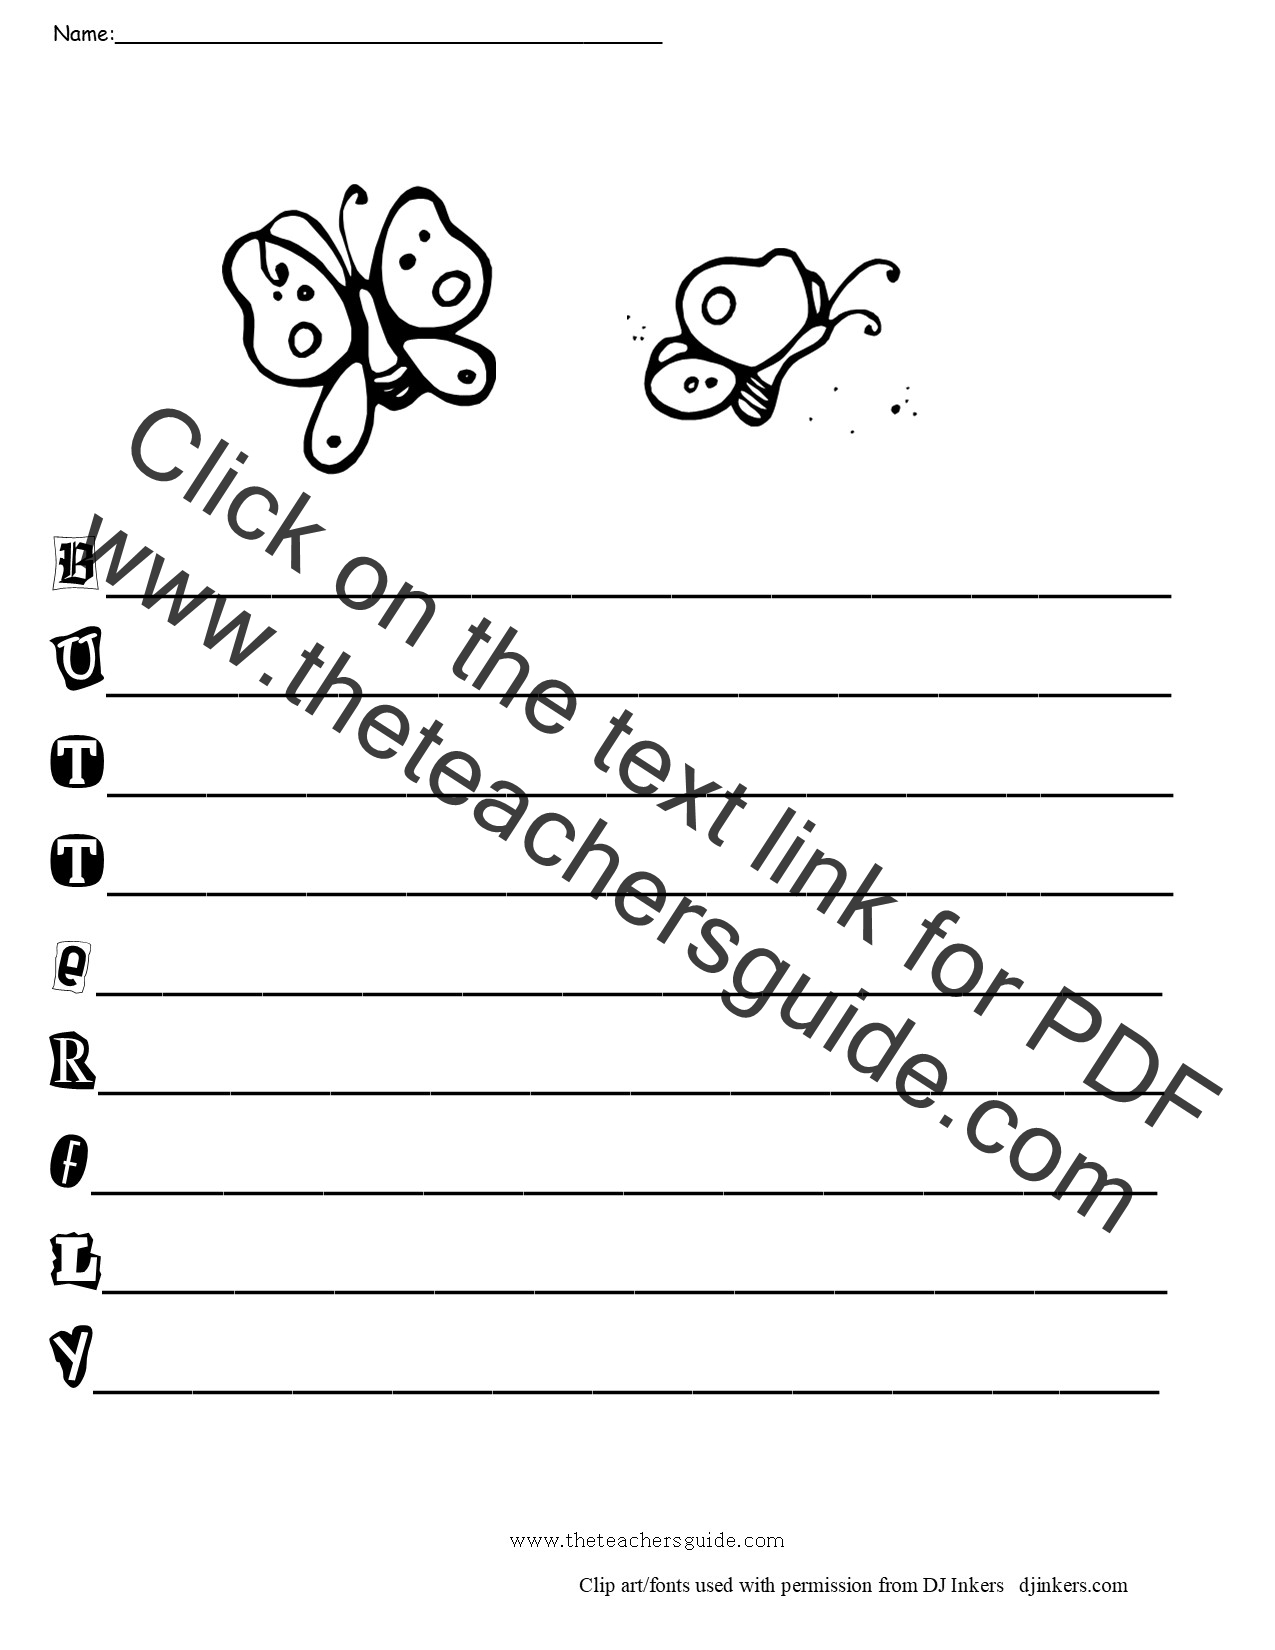 Printables Writing Poetry Worksheets free writing and language arts from the teachers guide butteflyacrosticpoemform poem forms